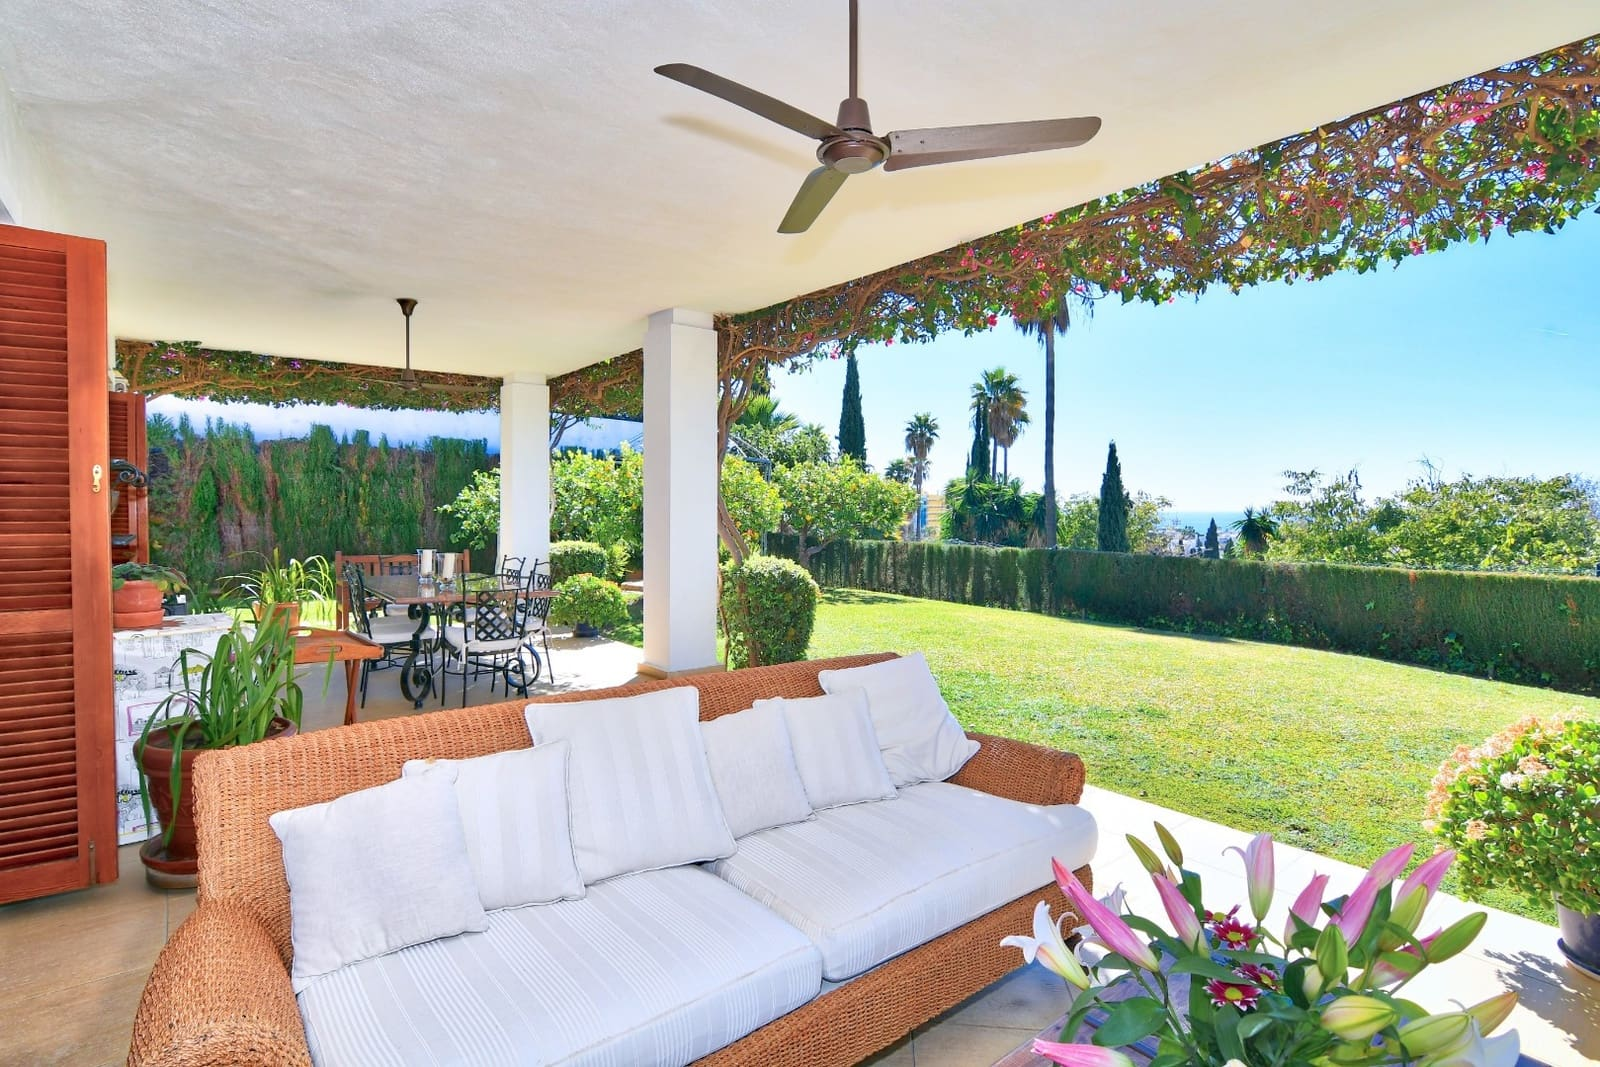 4 bedroom Villa for sale in Marbella with garage - € 1,900,000 (Ref: 4319358)